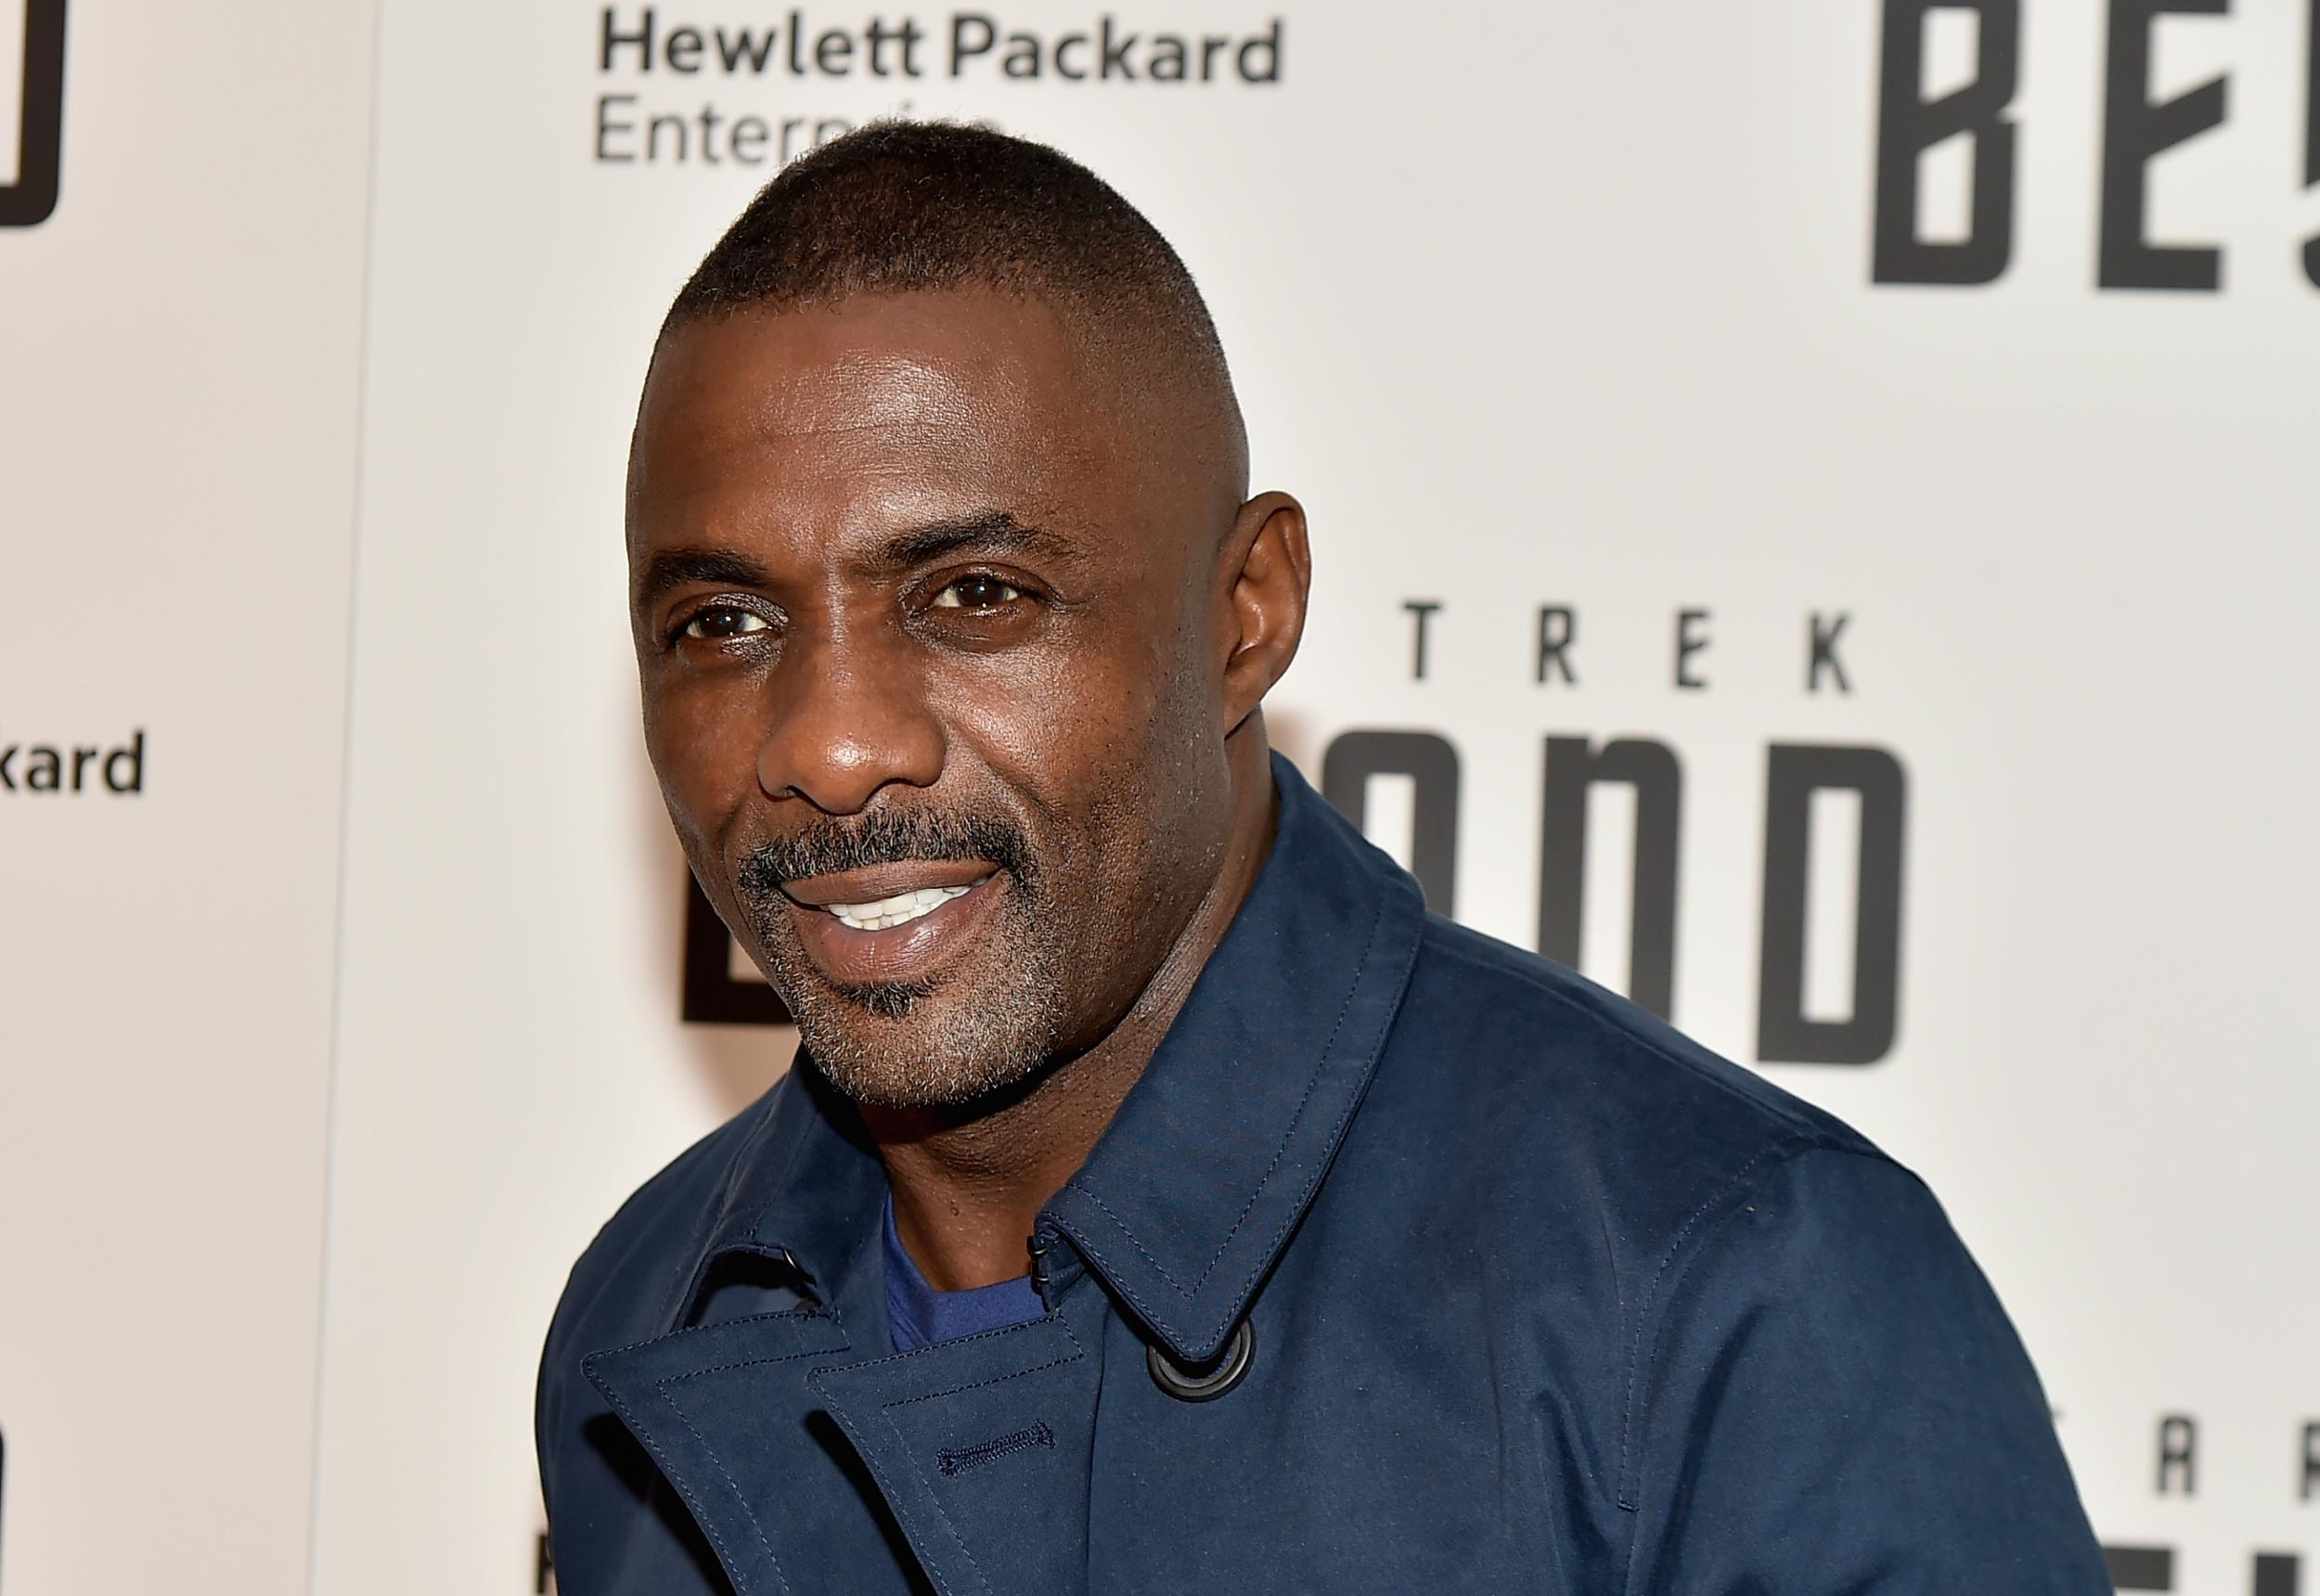 Keely Hawes Topless Ideal idris elba says he's 'too old' to play james bond | the independent